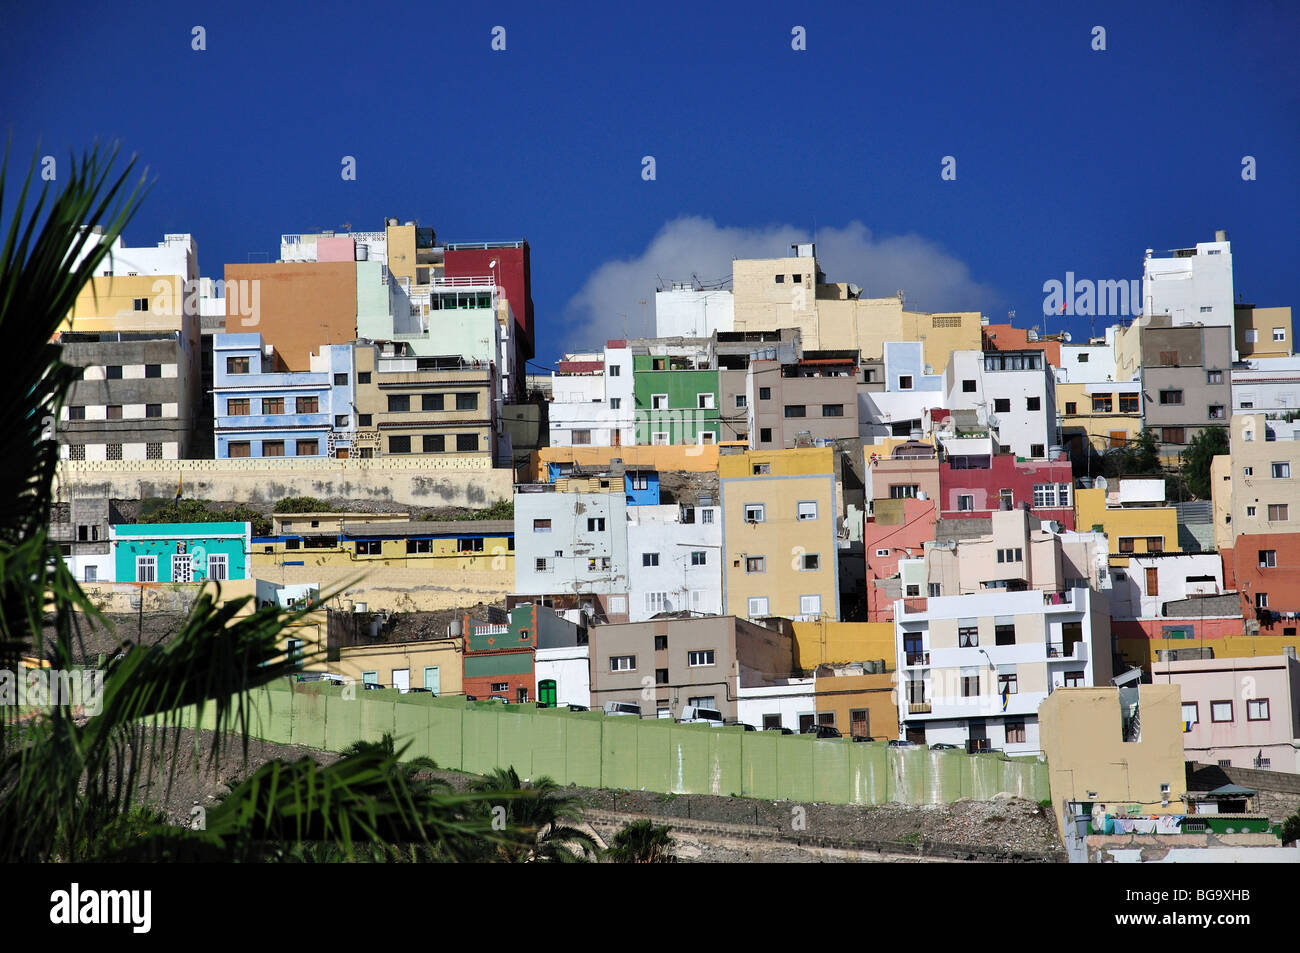 Las palmas model house house decor - Houses in gran canaria ...